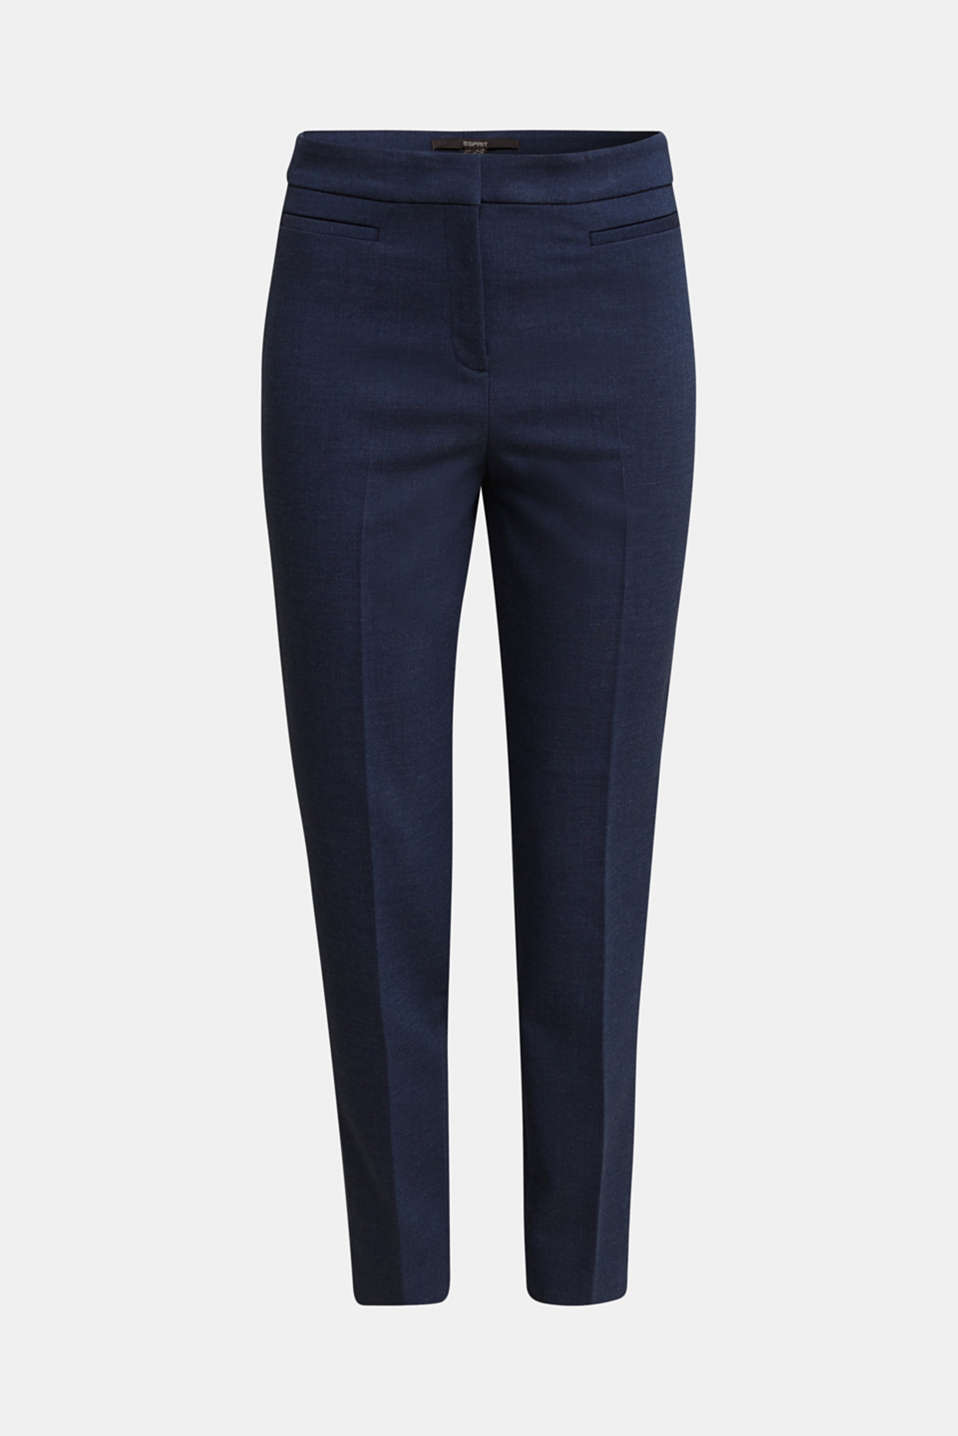 JERSEY mix + match trousers, GREY BLUE 5, detail image number 7